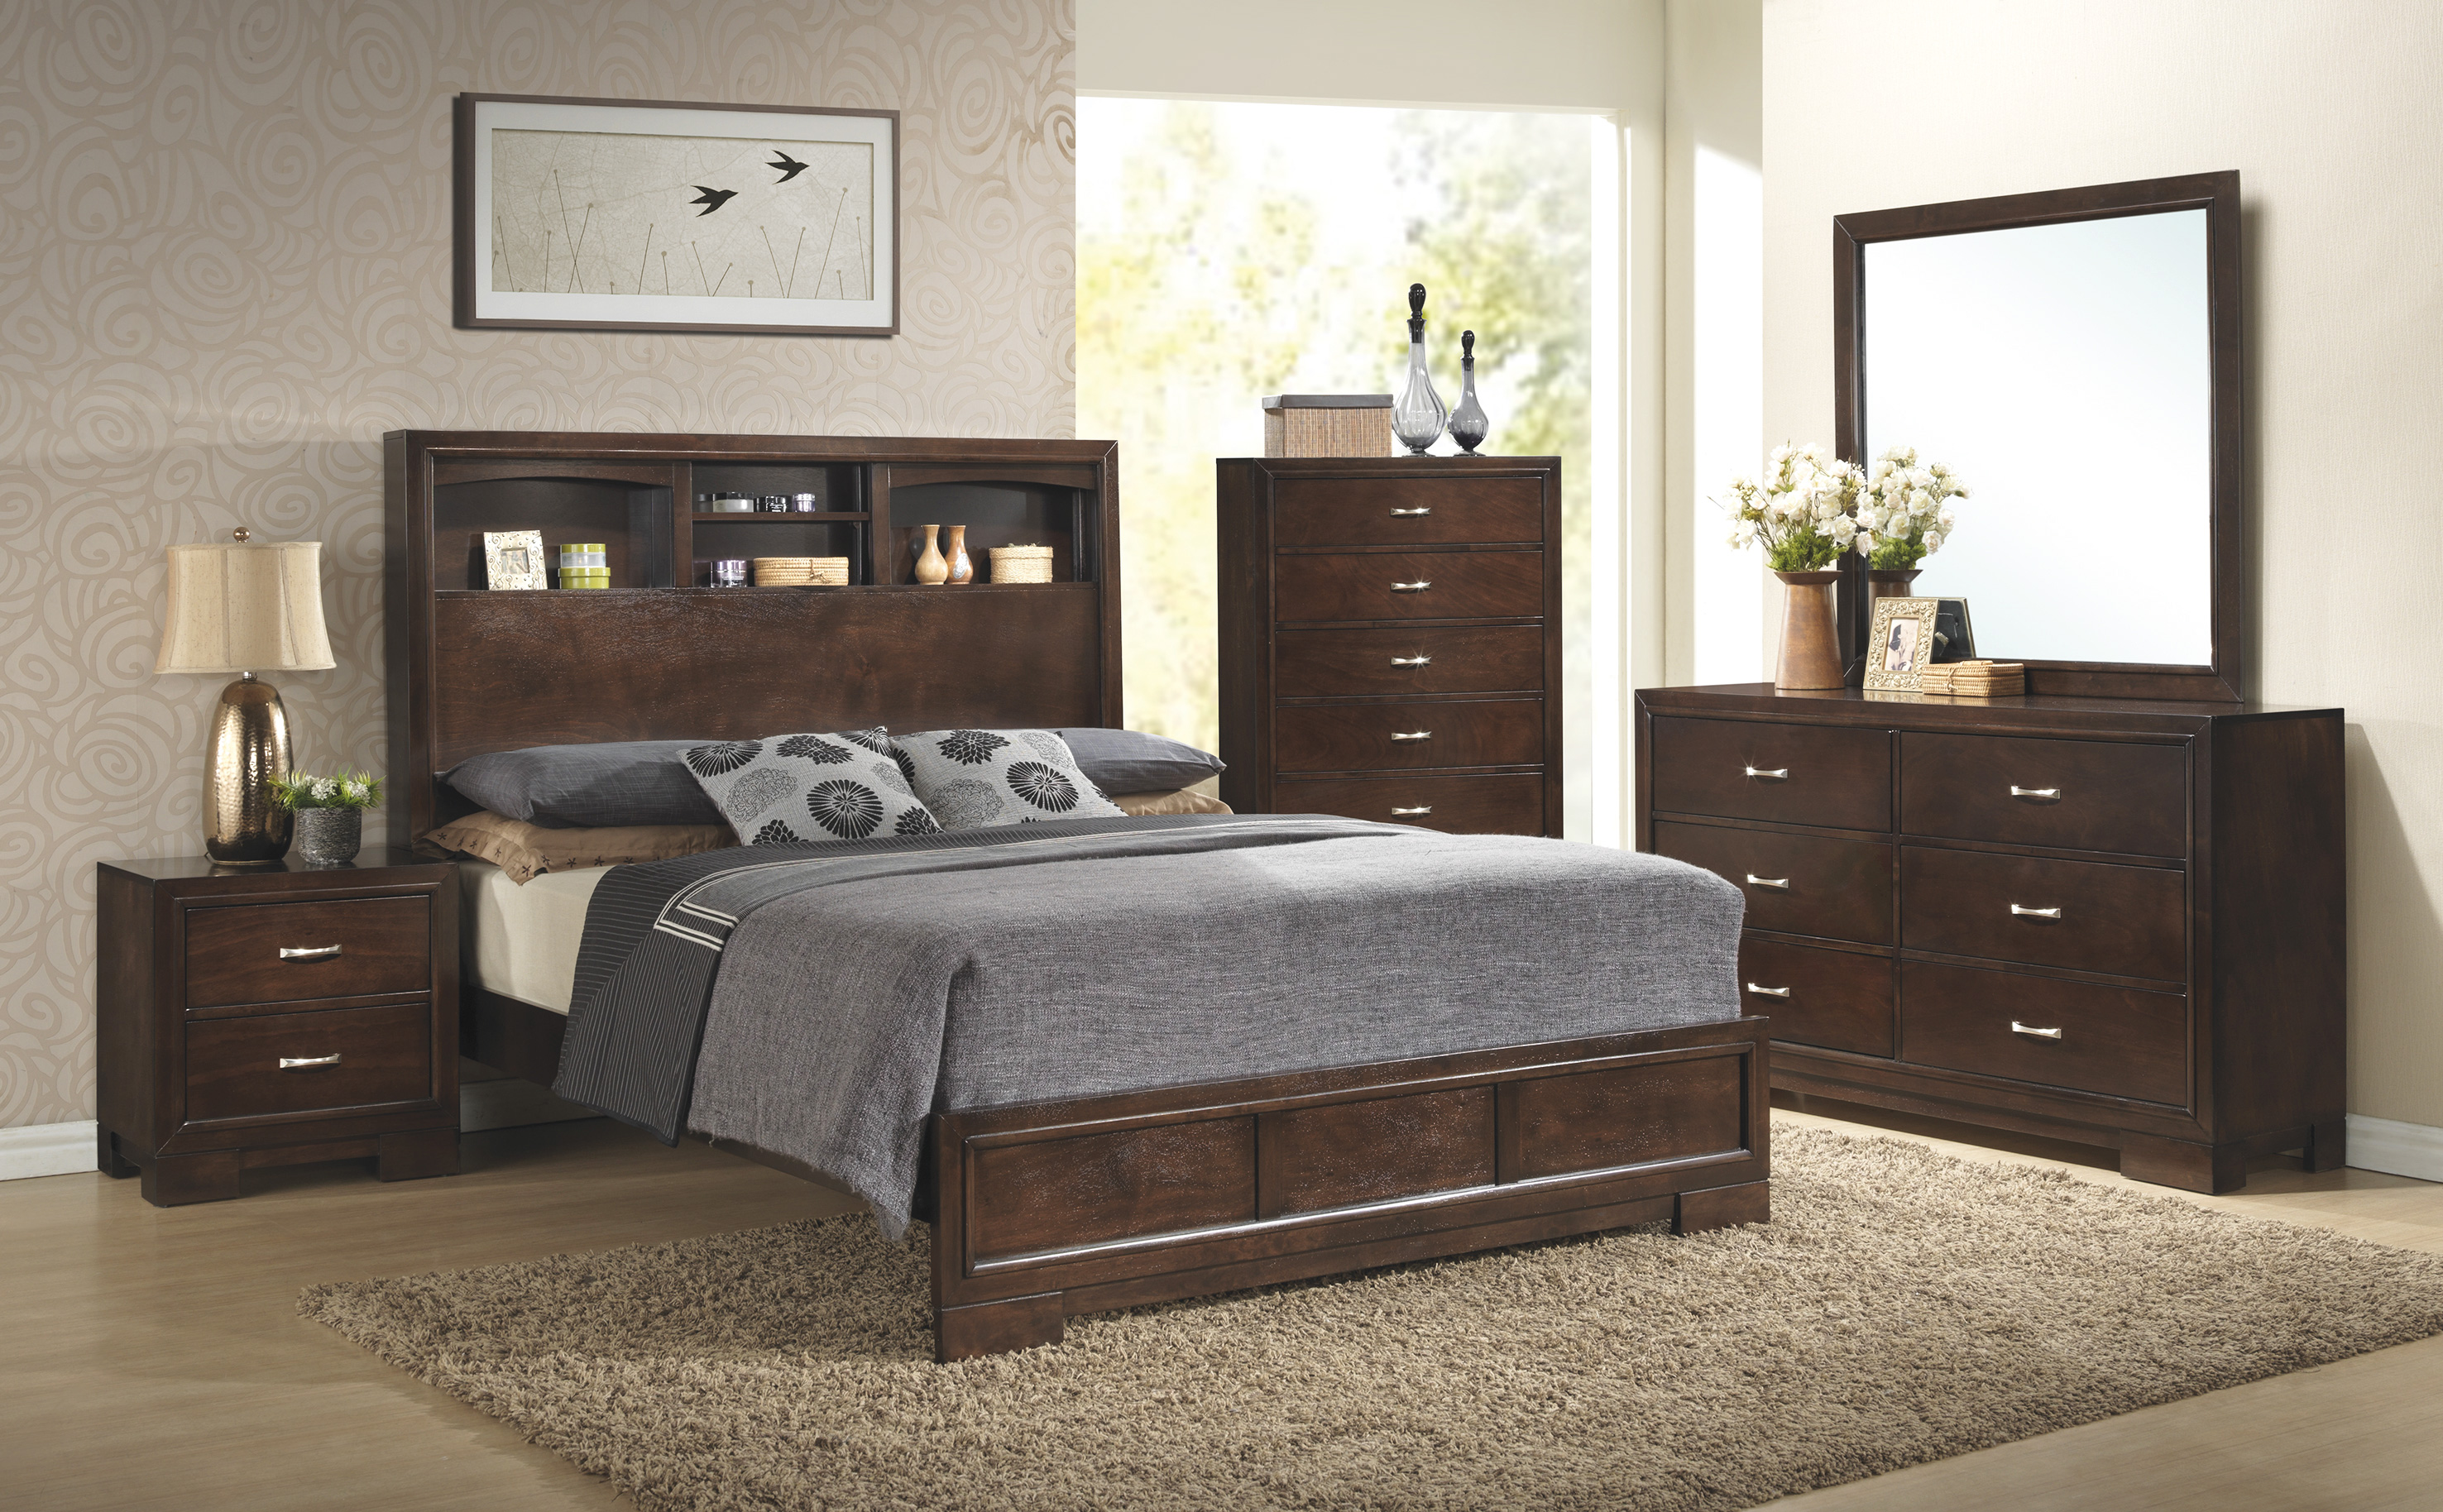 C4233A Walnut Bedroom – AWFCO Catalog Site